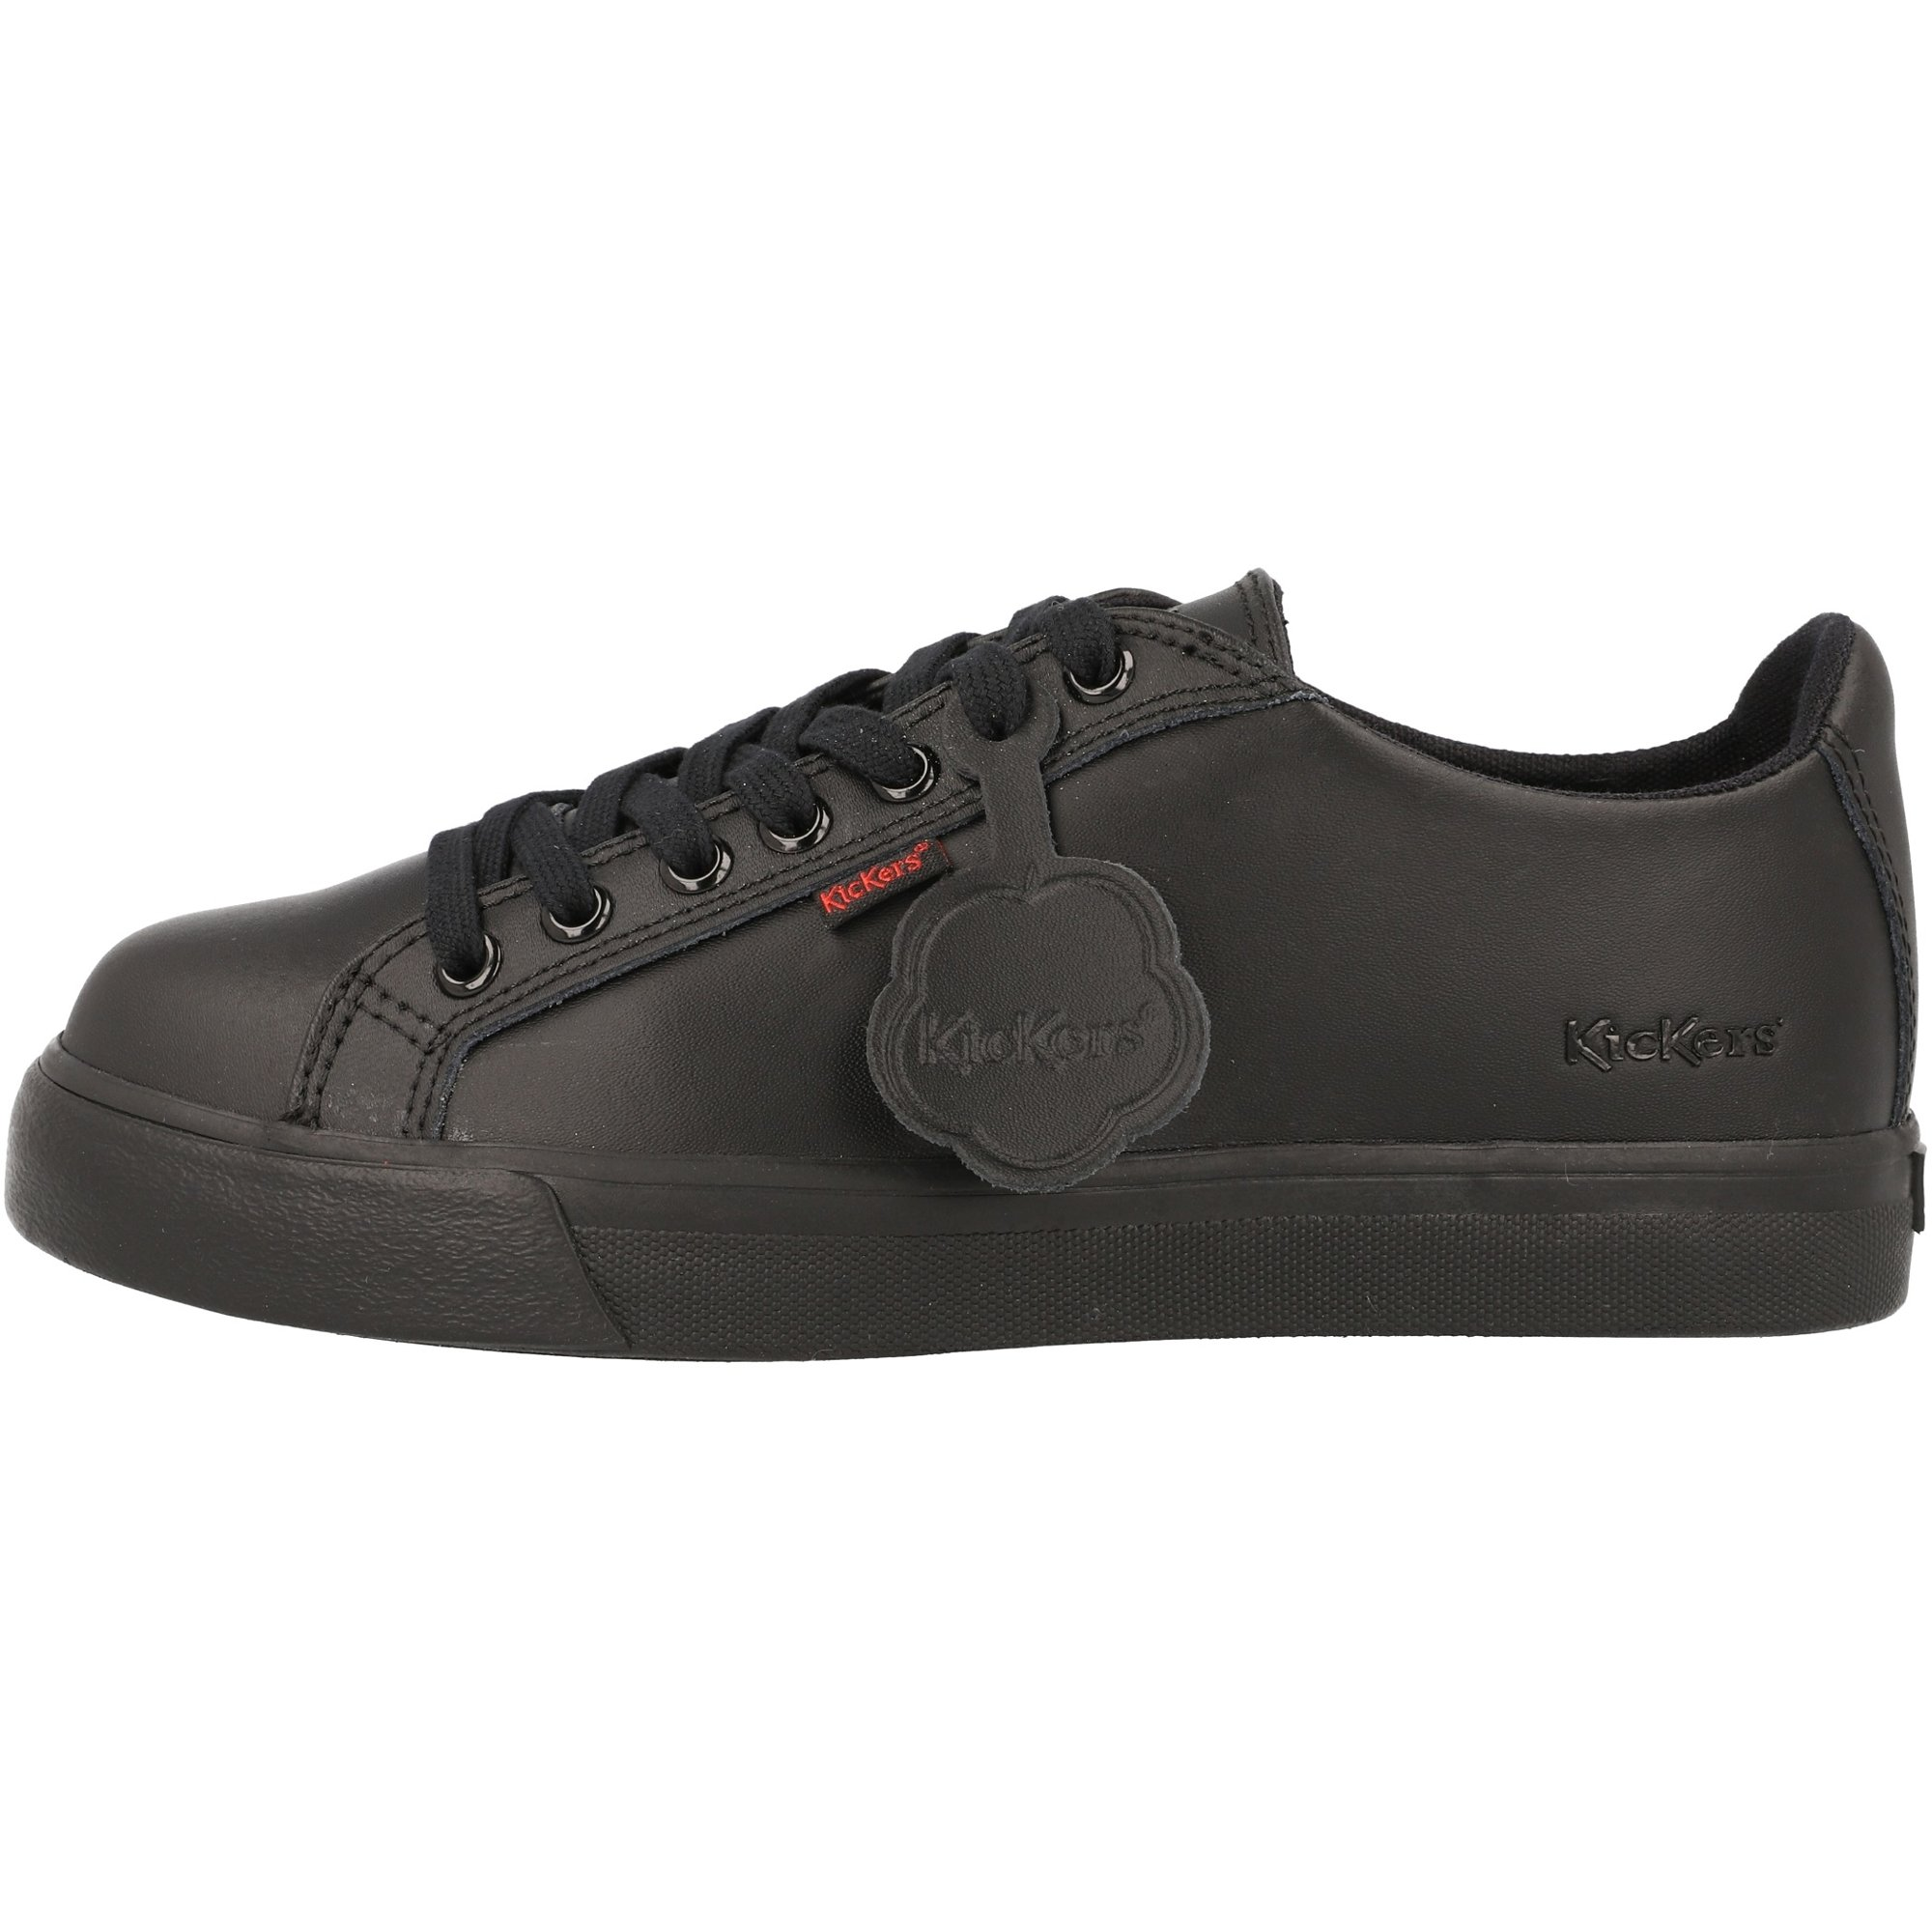 Kickers Tovni Lacer Y Black Leather Youth